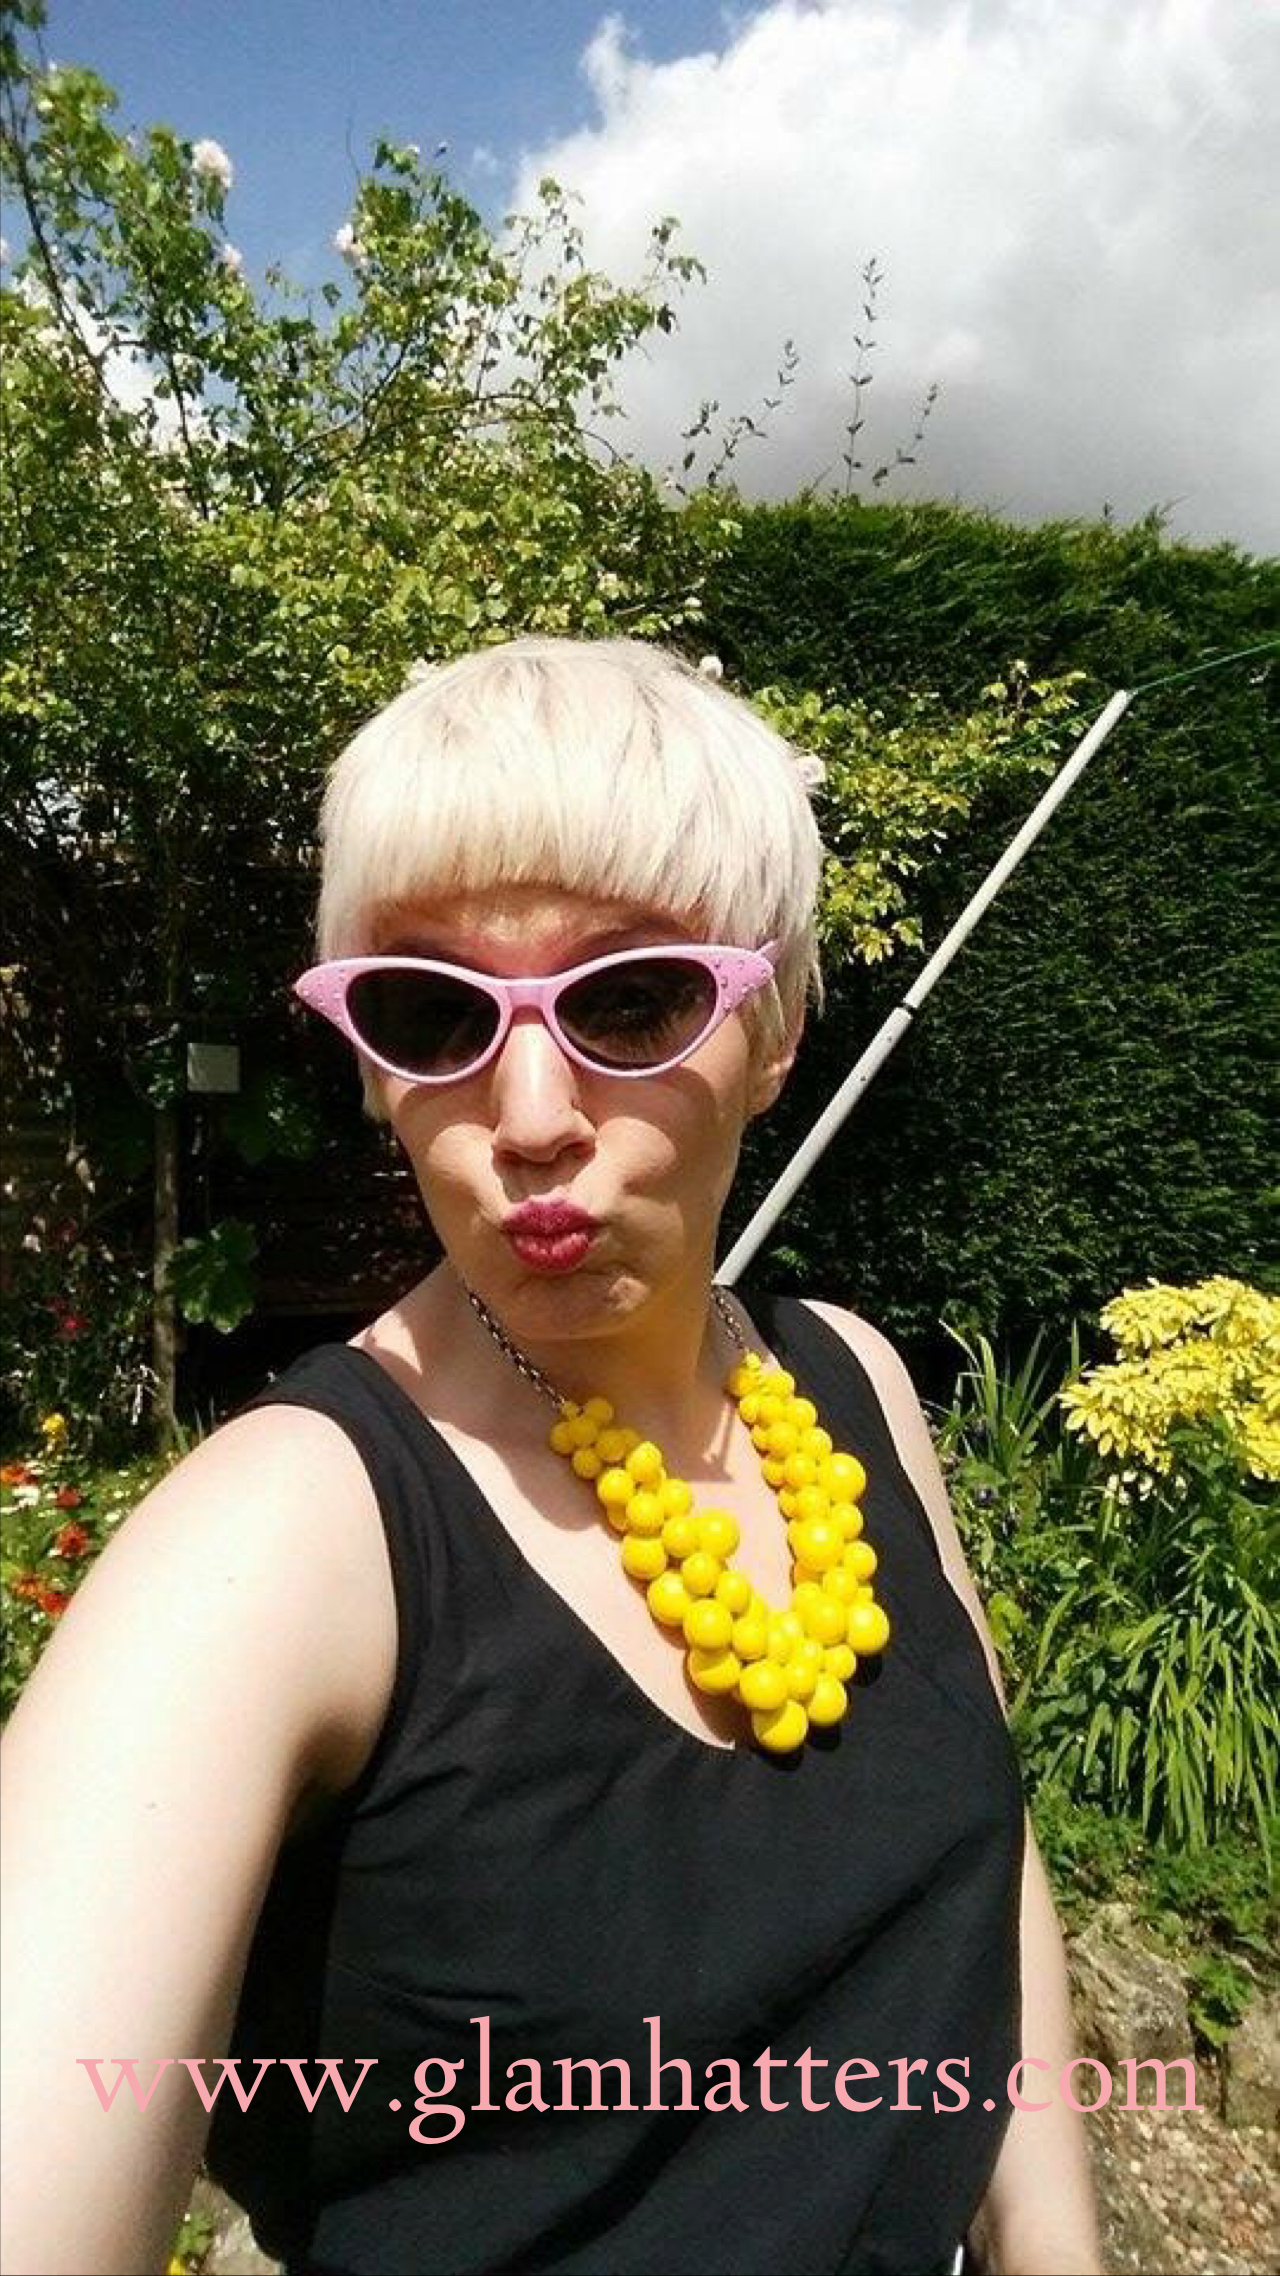 Our Glam Hatter Girl wearing her goody bag sunnies!